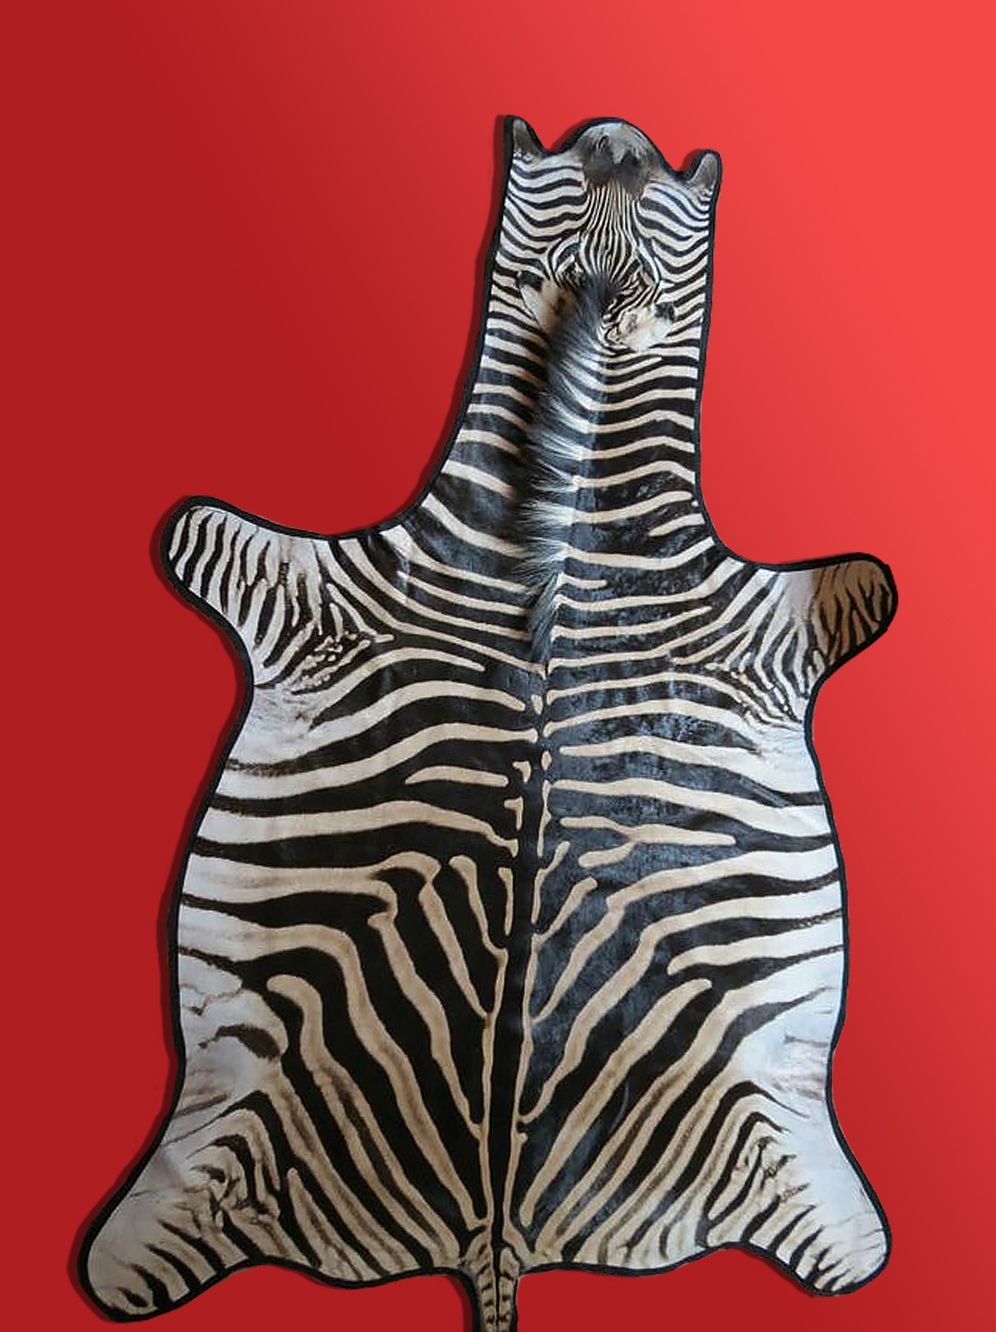 Zebra Skin Rug Authentic And Real Hide Supplier At Affordable Rates